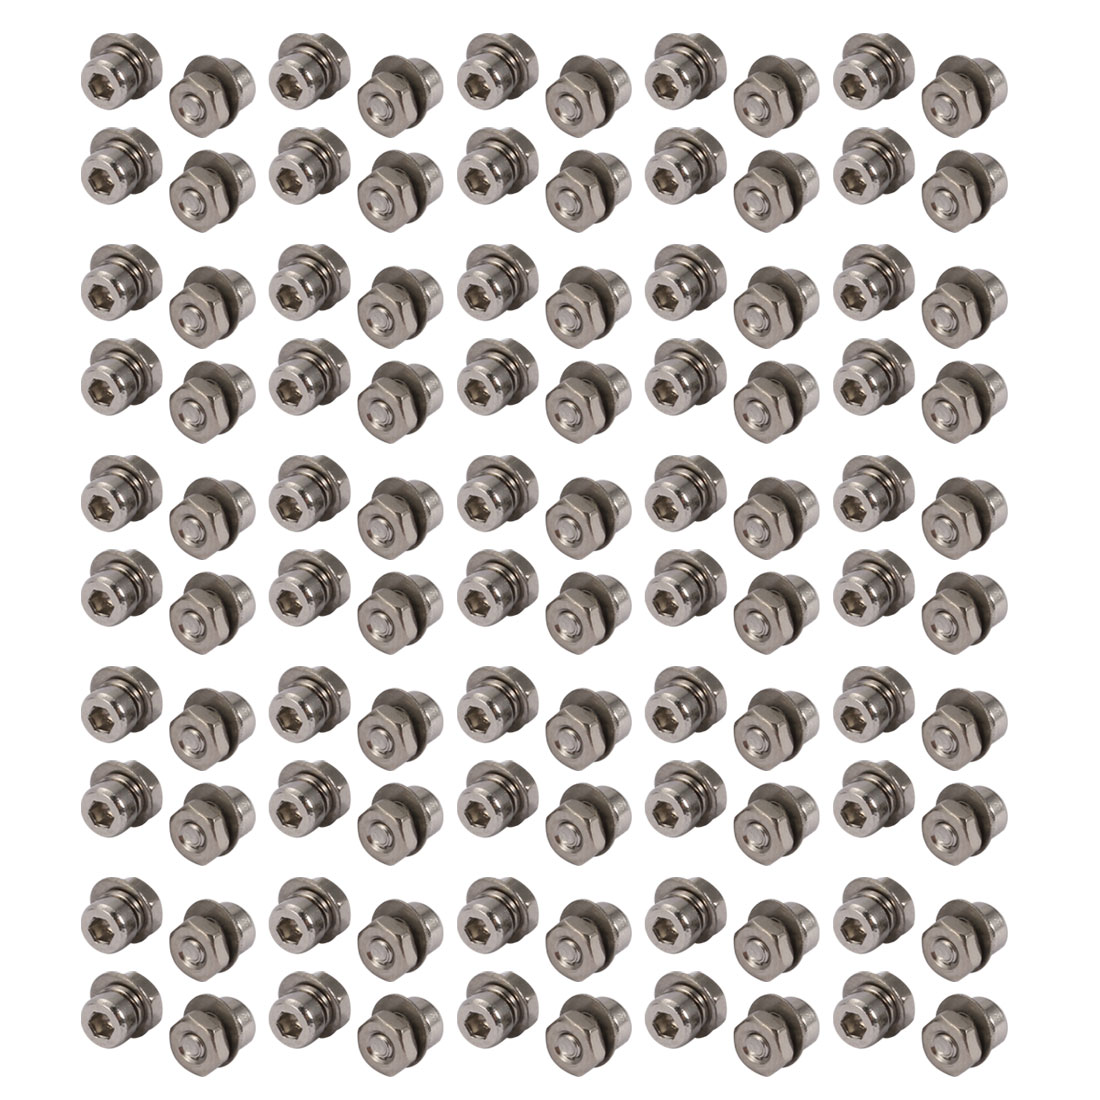 100pcs M2x3mm 304 Stainless Steel Knurled Hex Socket Head Bolts w Nut Washer